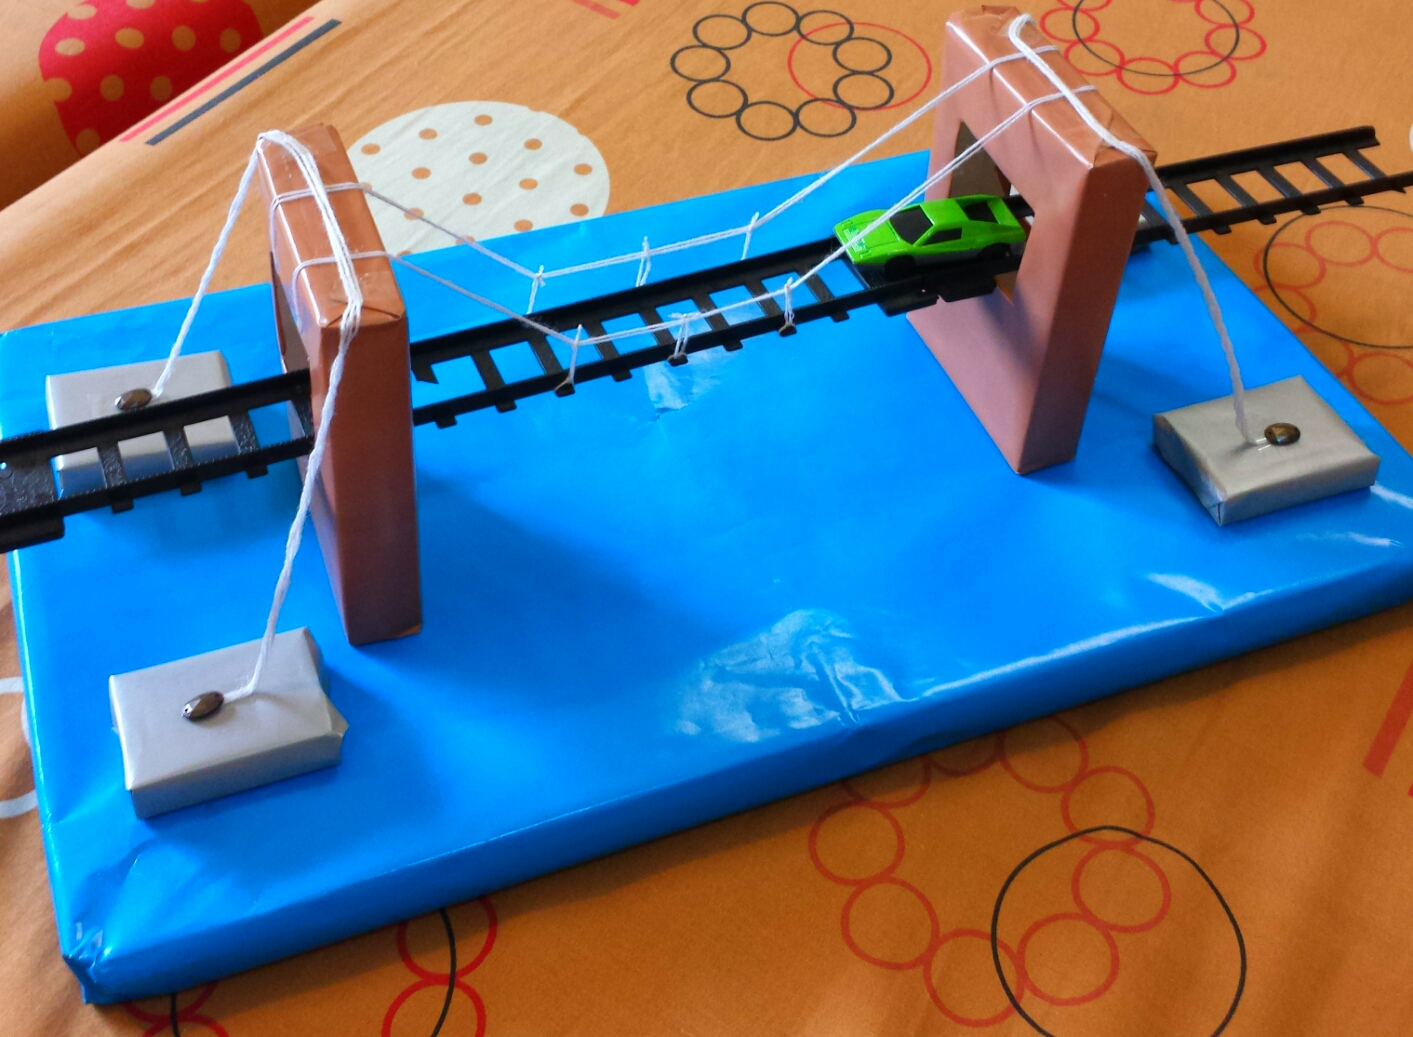 DIY Model Of A Bridge For Teens And Kids